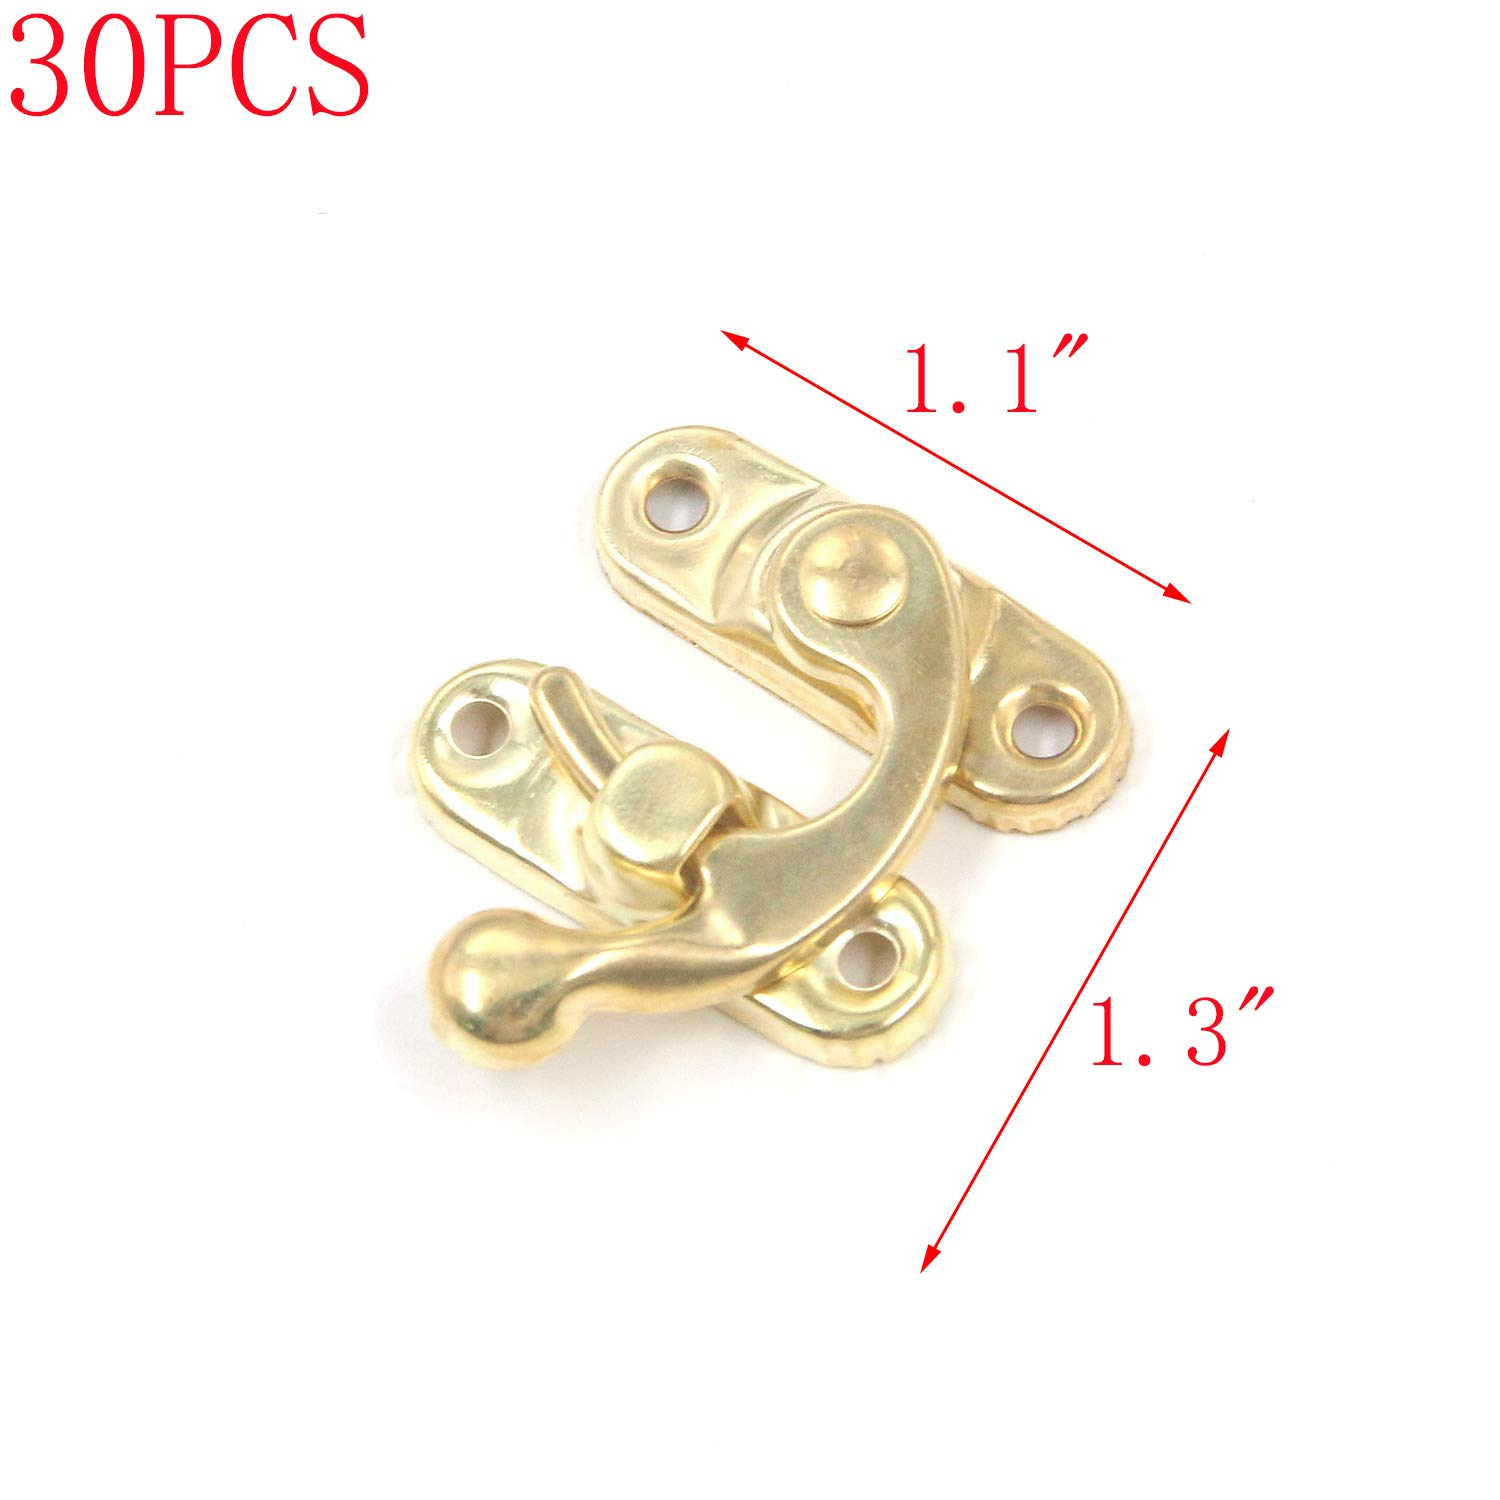 MTMTOOL Iron Swing Arm Lock Clasp Right Latch 30Pcs Gold Decorative Box Latch Right Latch Hook Hasp with Screws for Jewelry Wood Box Case Chest Gift Box